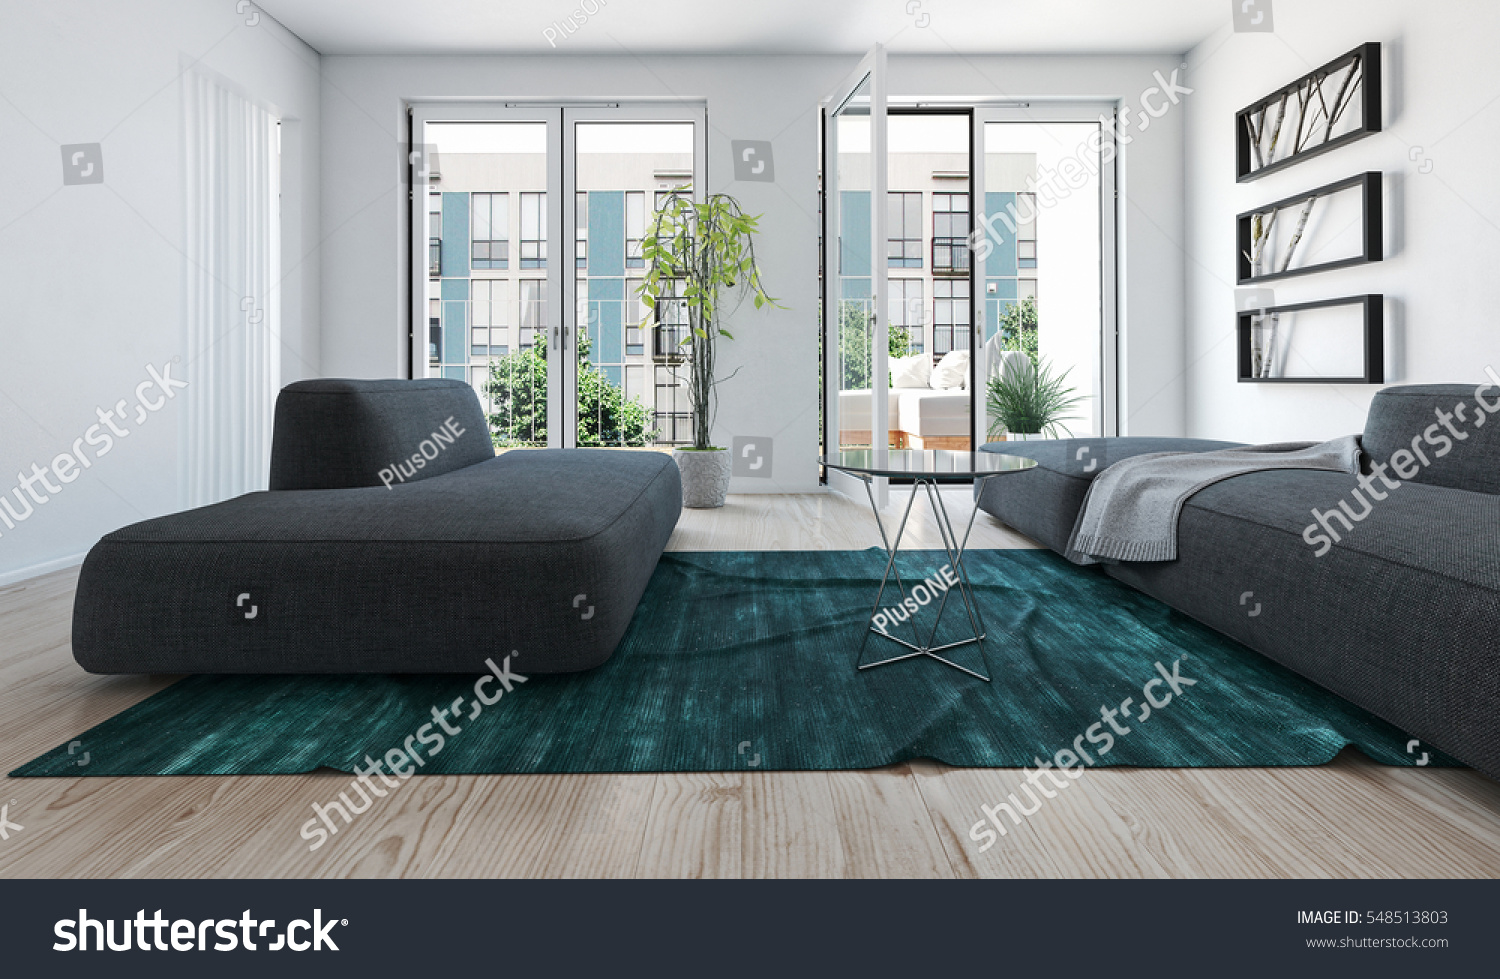 living room with light green carpet rooms to go sofa bright apartment interior stock illustration large sofas on a blue rug and windows